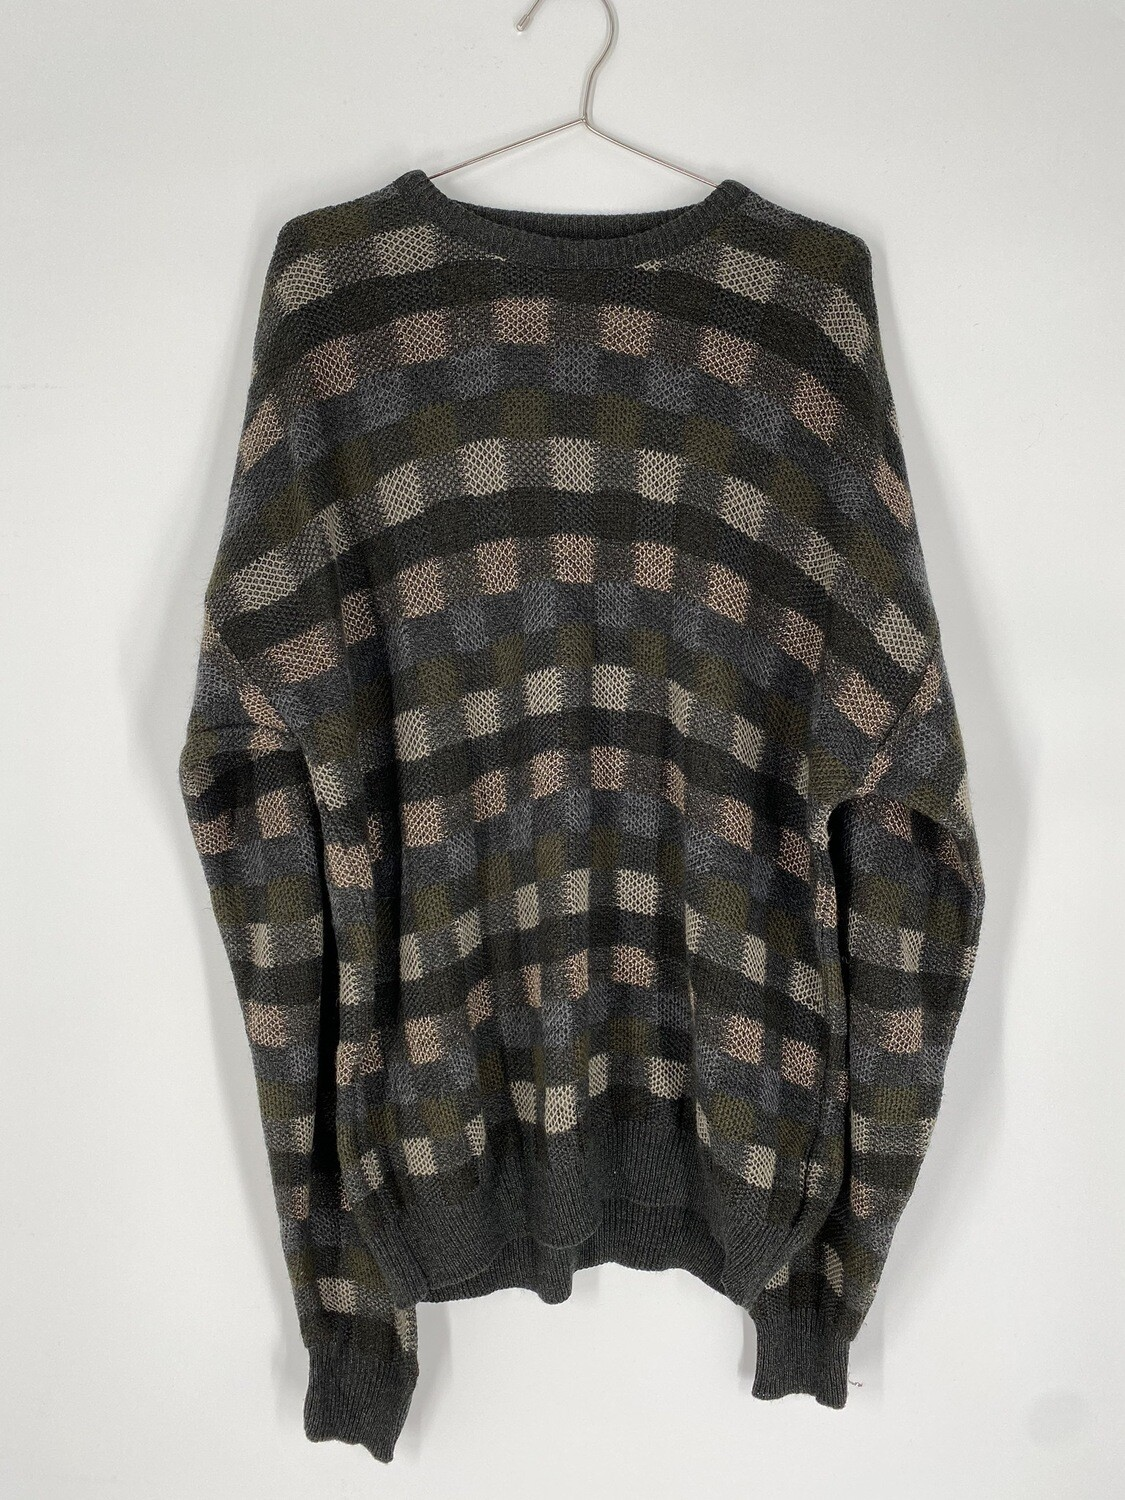 Checkered Green Sweater Size L